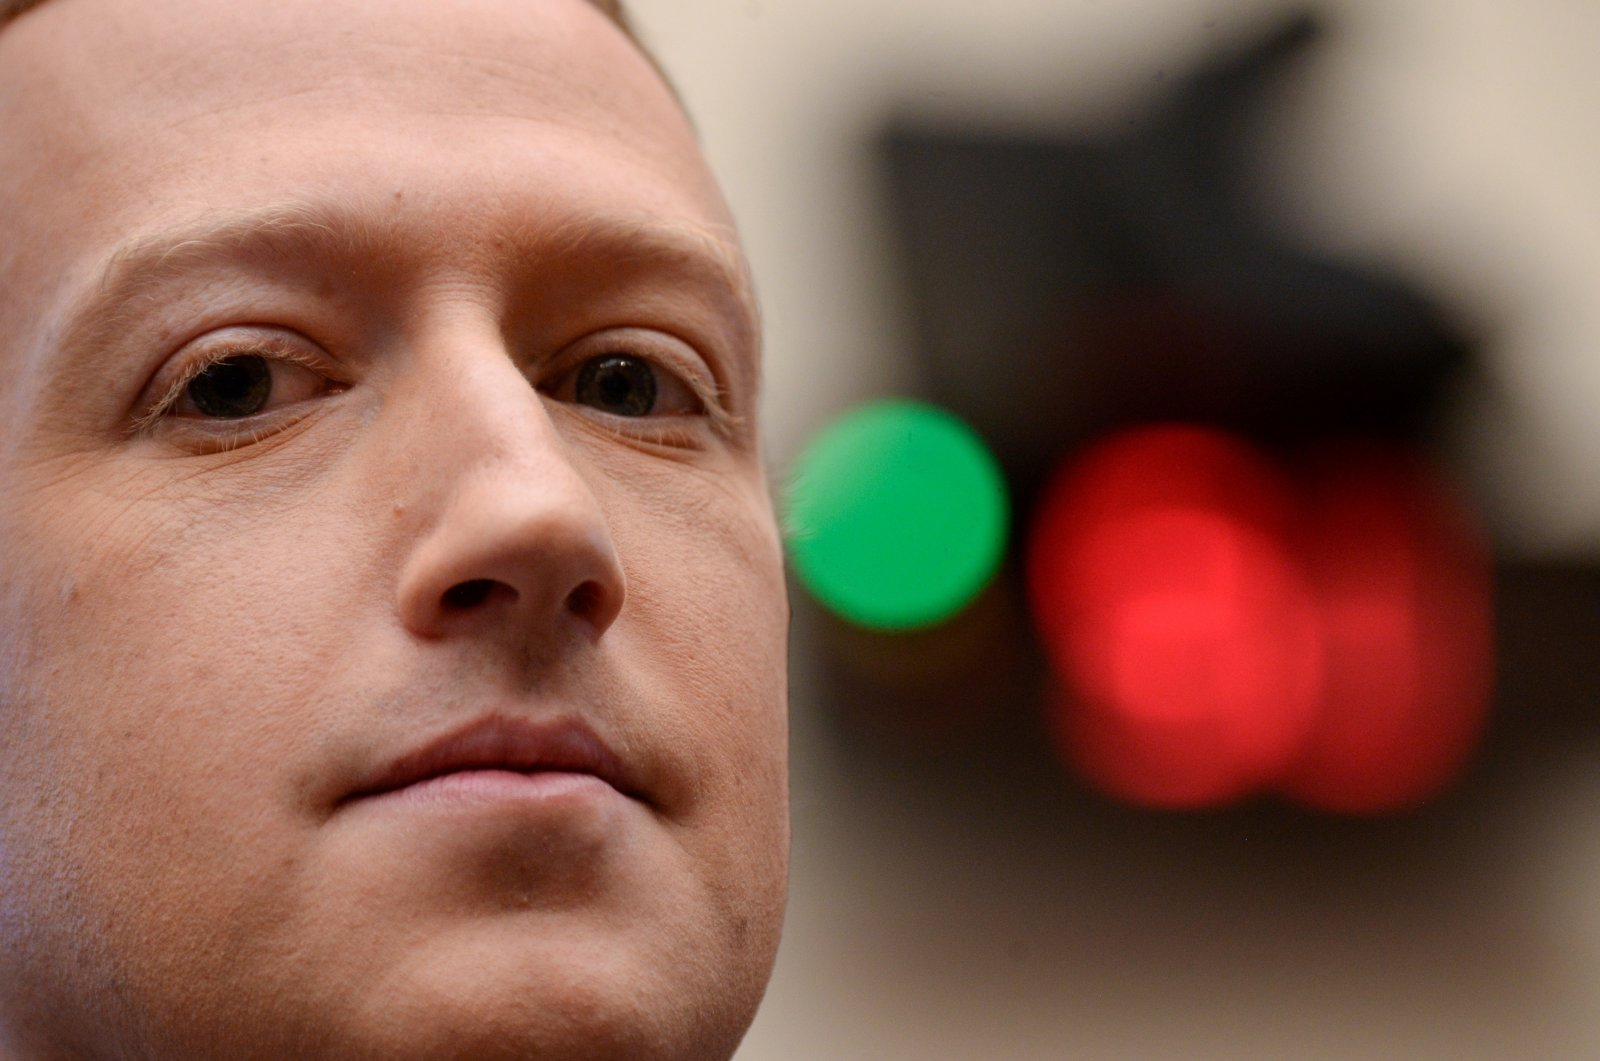 Facebook Chairman and CEO Mark Zuckerberg testifies at a House Financial Services Committee hearing in Washington, U.S., Oct. 23, 2019. (Reuters File Photo)